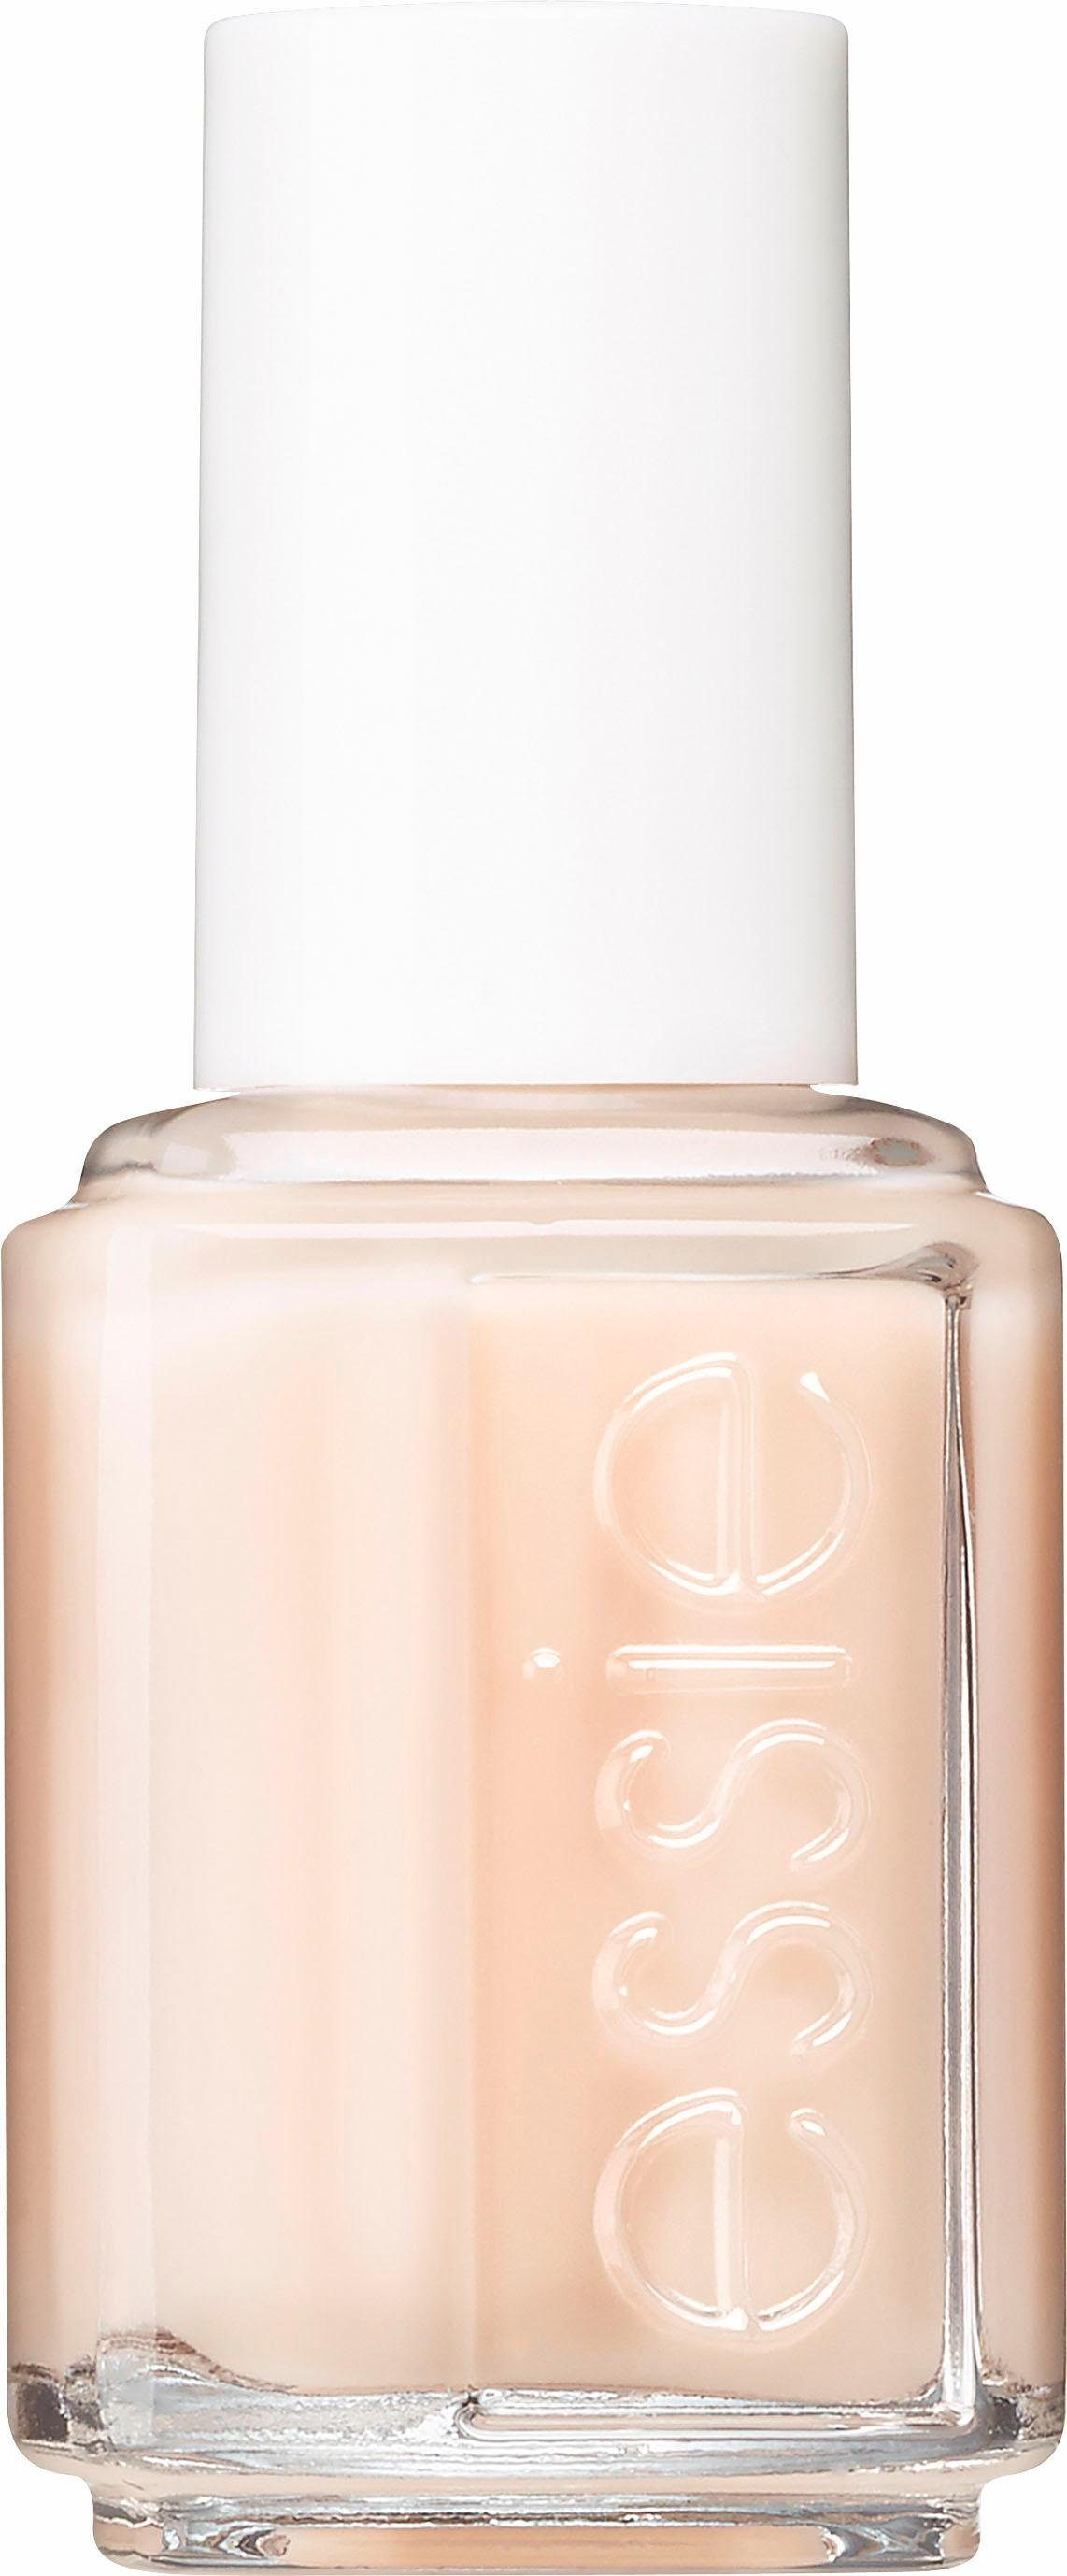 Essie, »Grow Stronger«, Base Coat